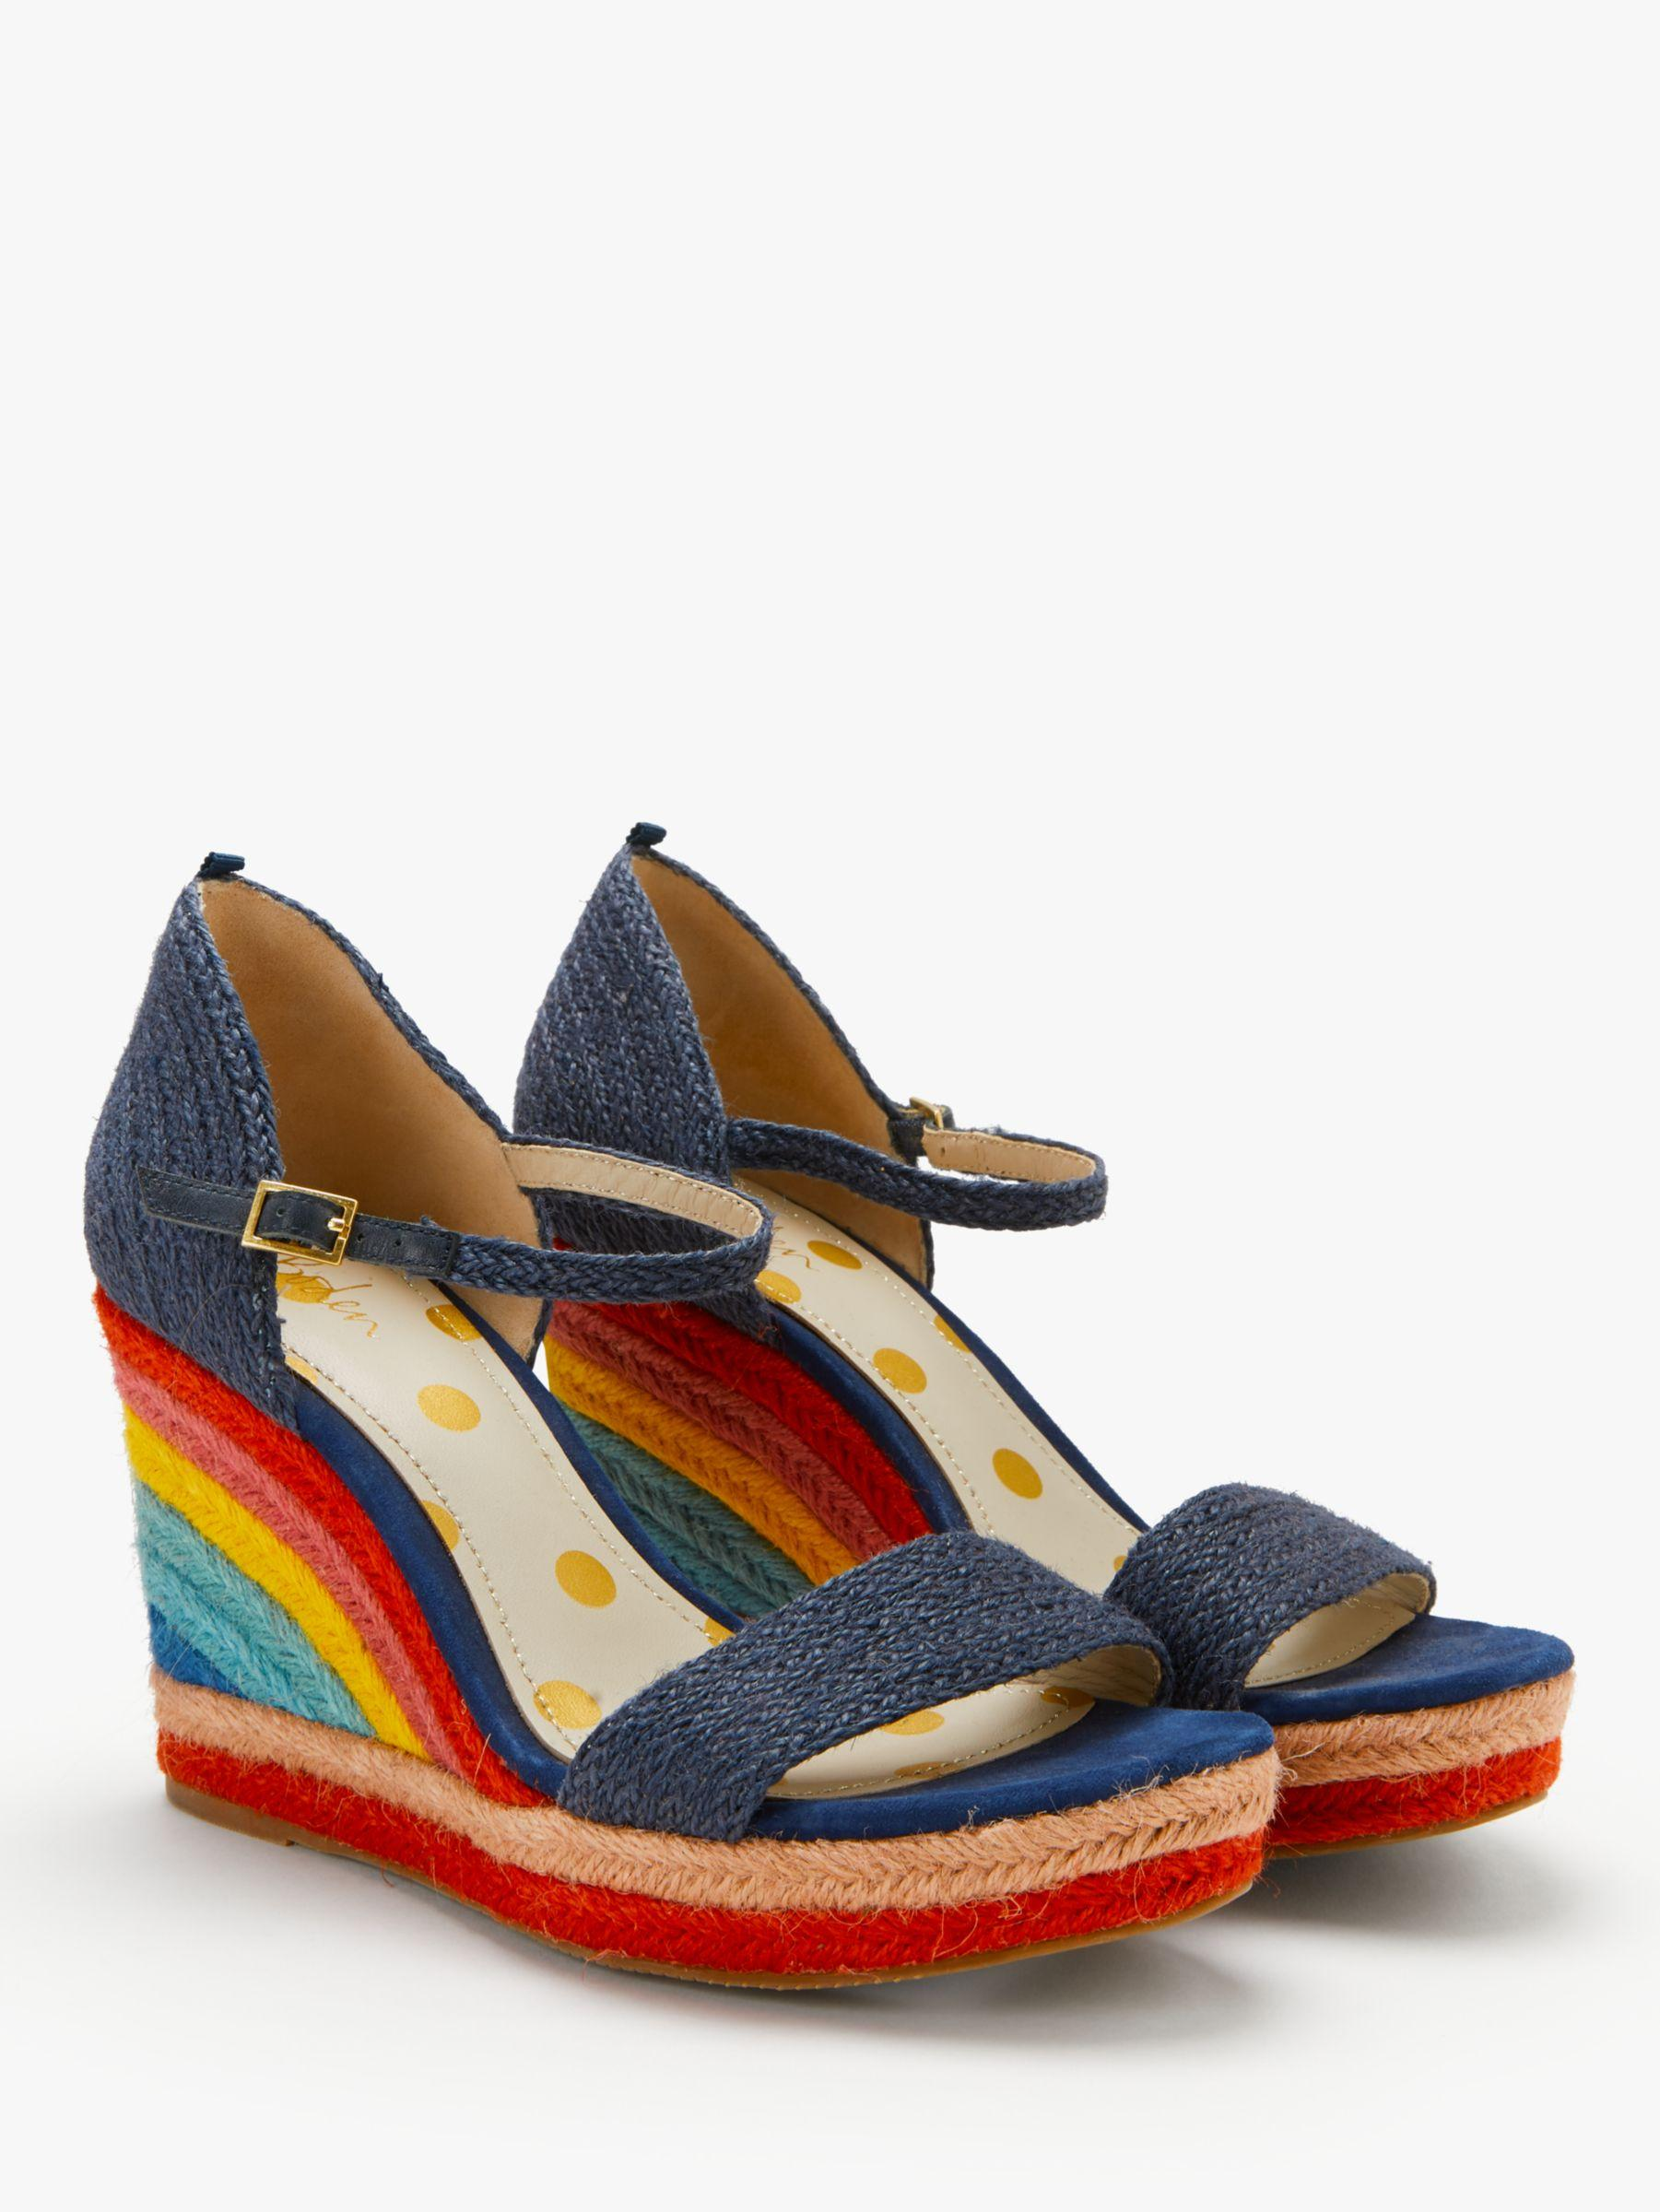 834e1c13ae8 Boden Lily Espadrille Wedges in Blue - Lyst